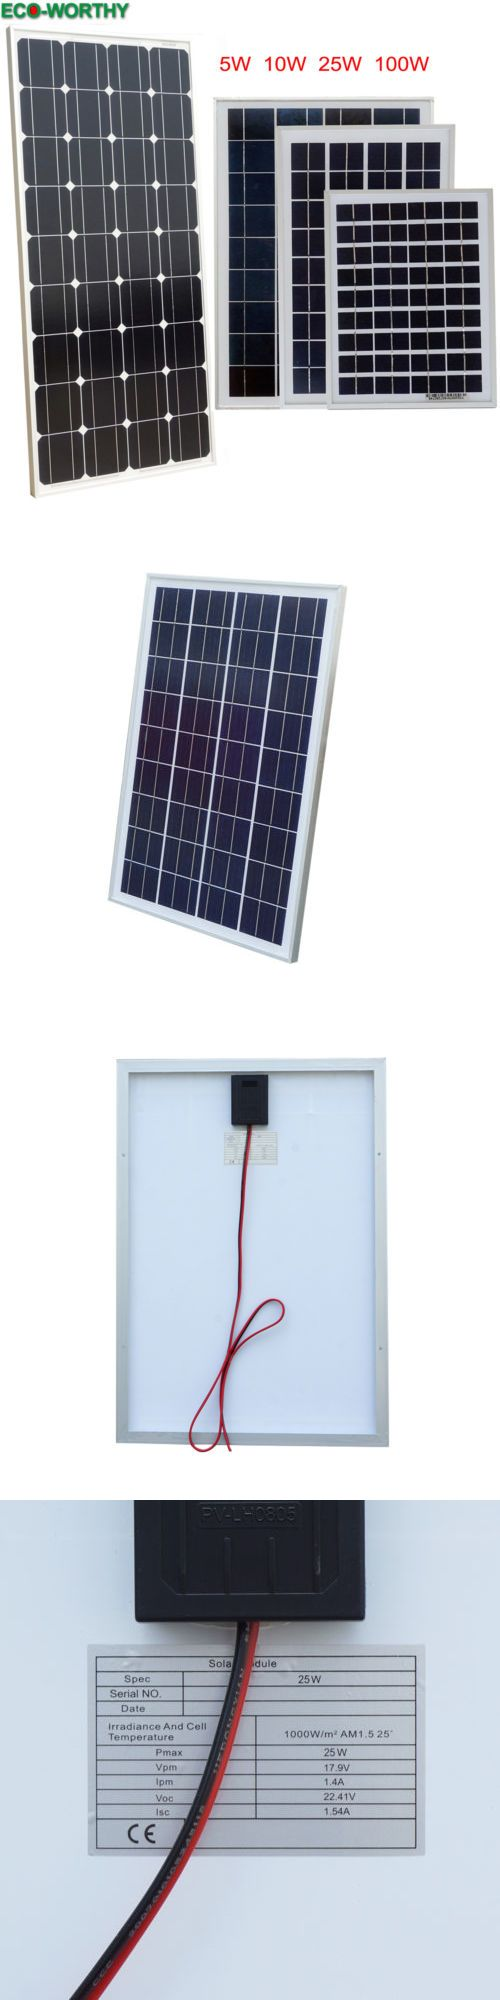 Alternative And Solar Energy 41979 Eco 5w 10w 25w 100w Watts Solar Panel 12v Off Grid Battery Charger For Rv Boat Buy It Now Only 35 14 Solar Panels Solar